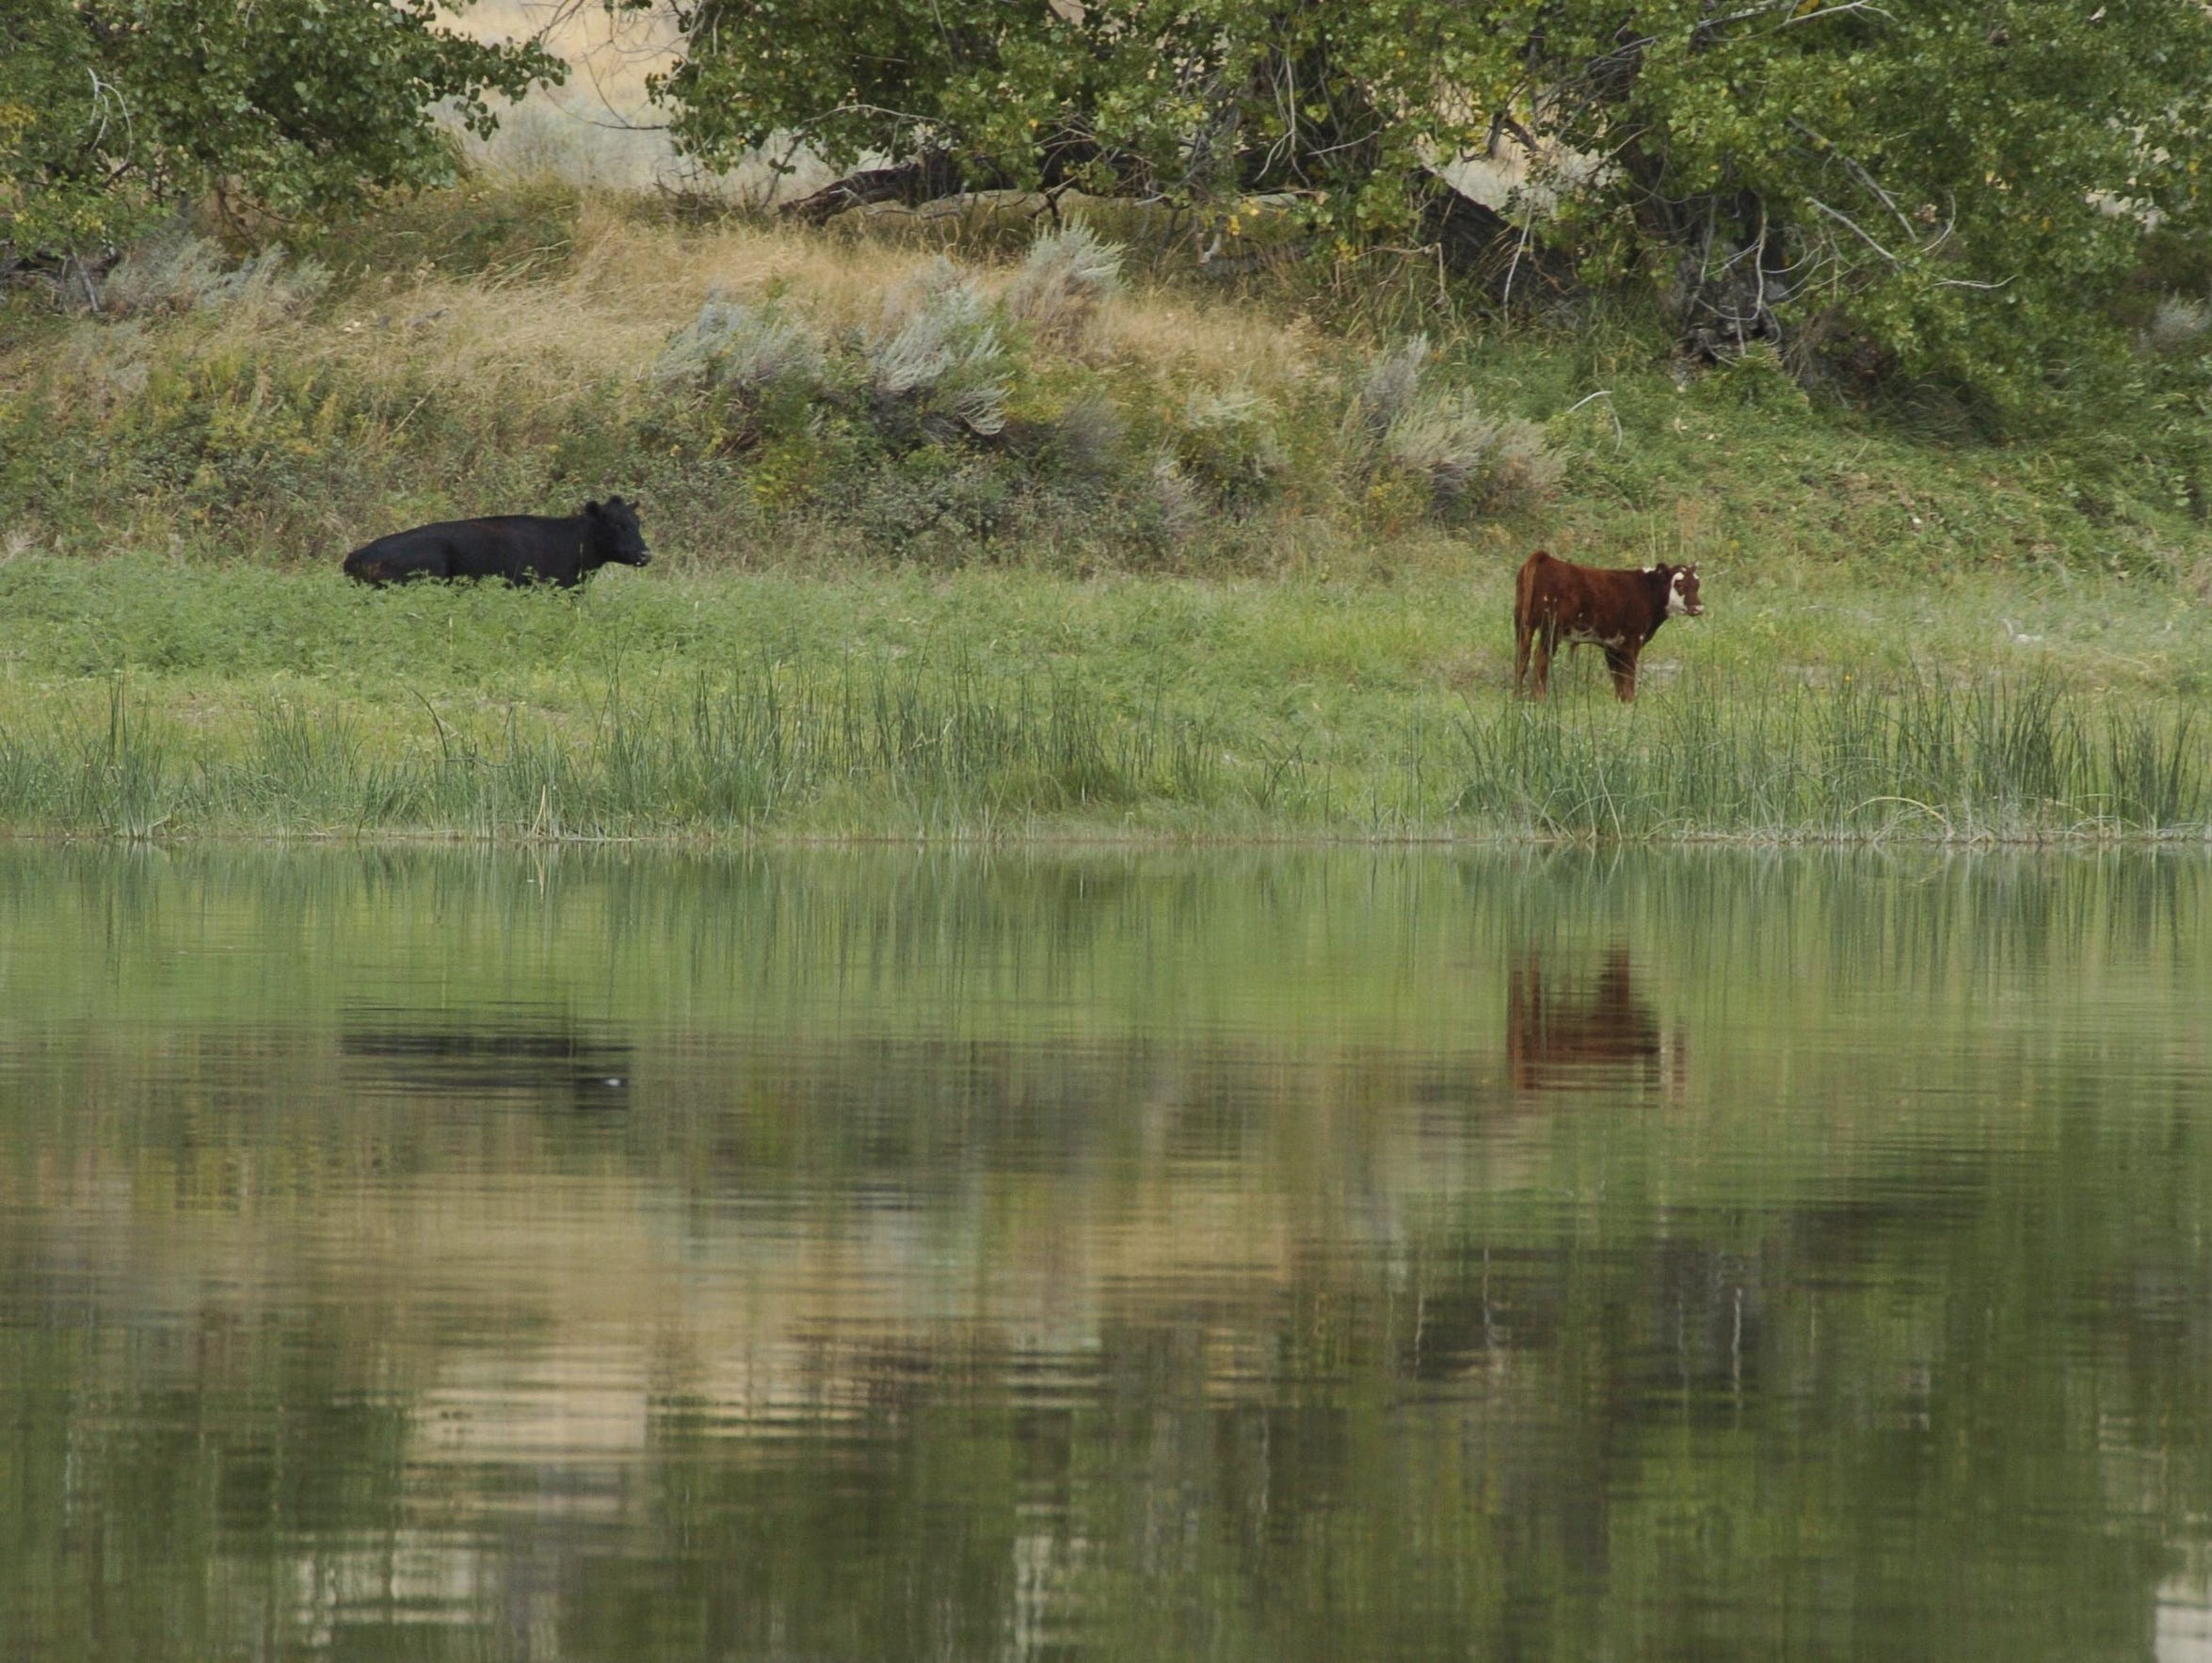 Cows graze along a section of the Missouri River that